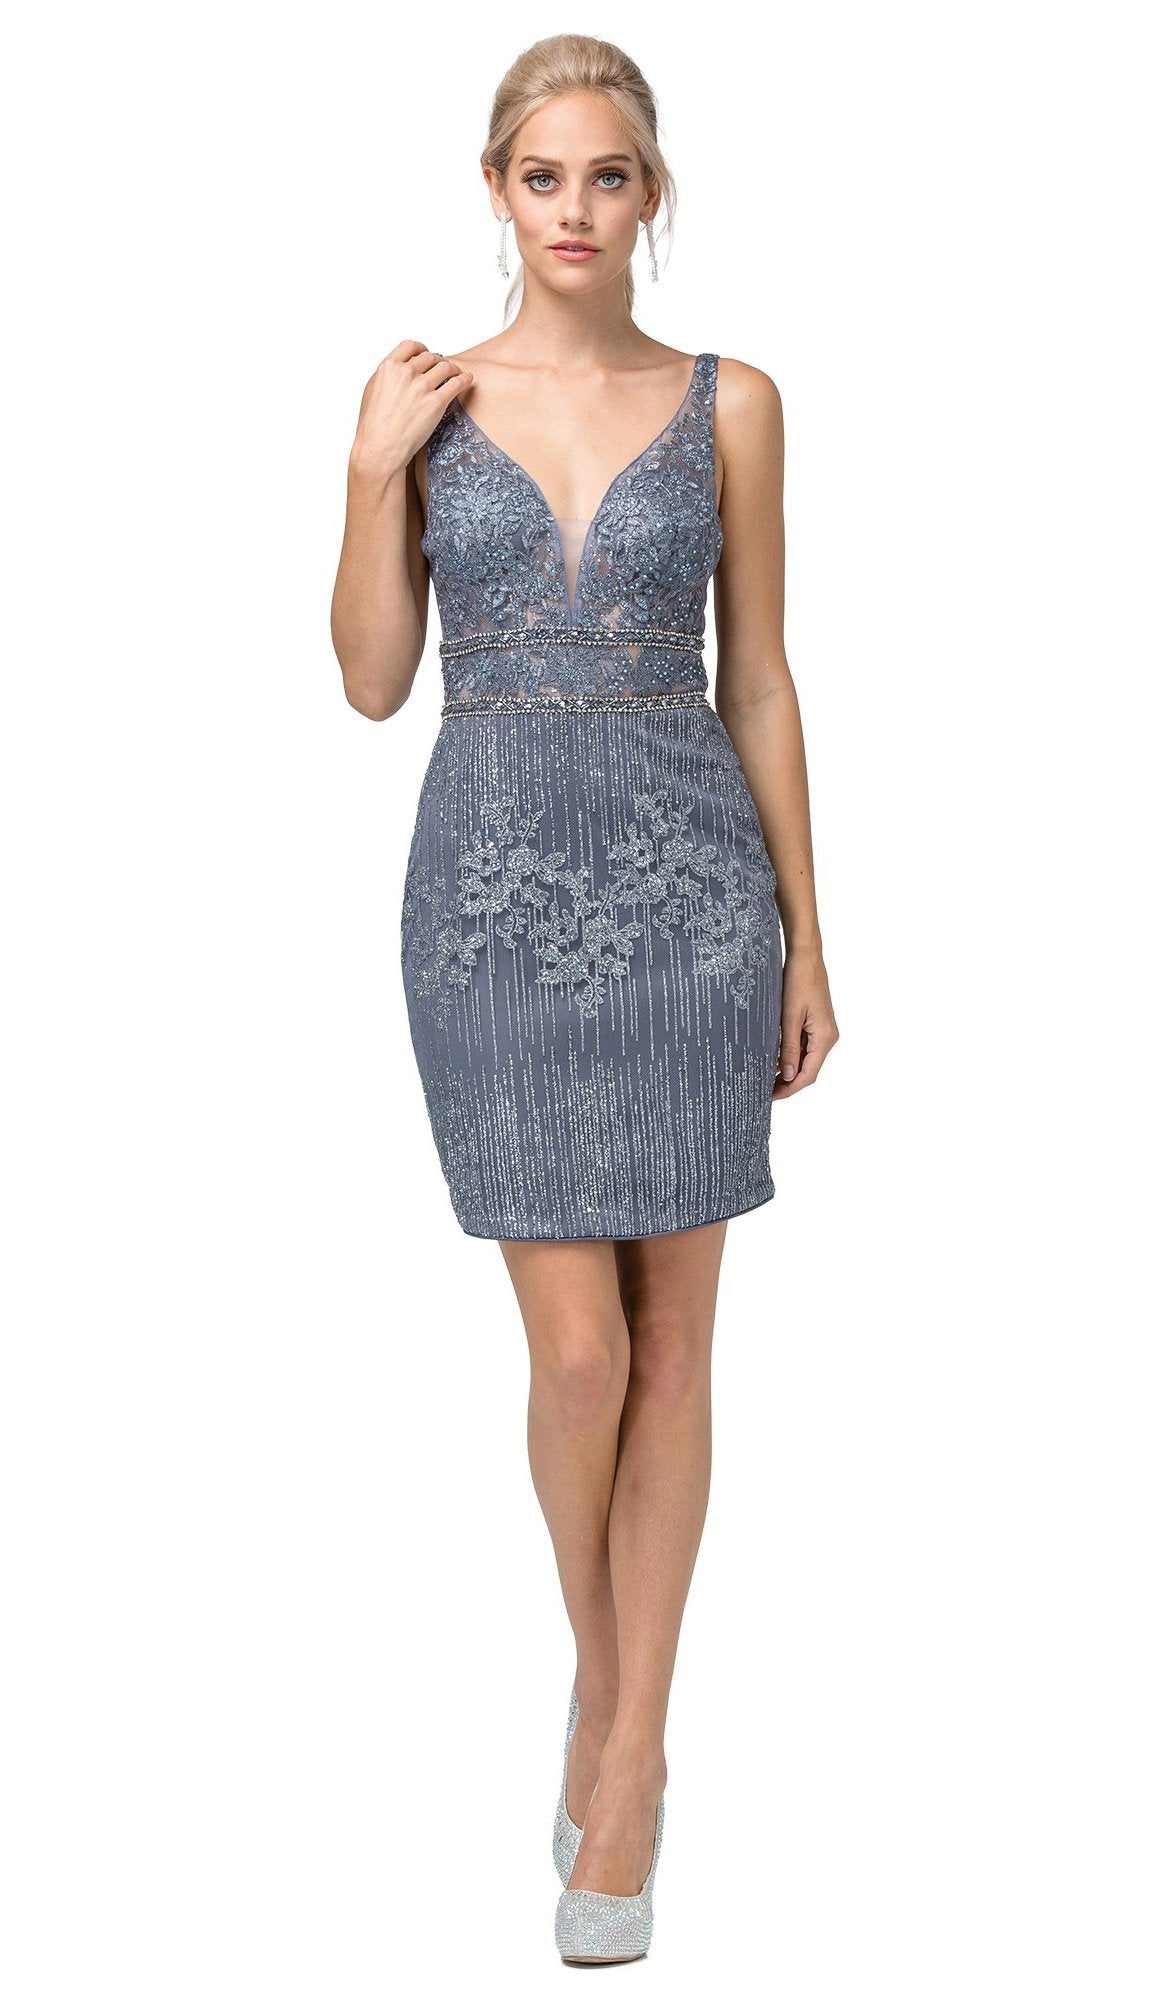 Dancing Queen - 3210 Embroidered Deep V-neck Fitted Dress In Blue